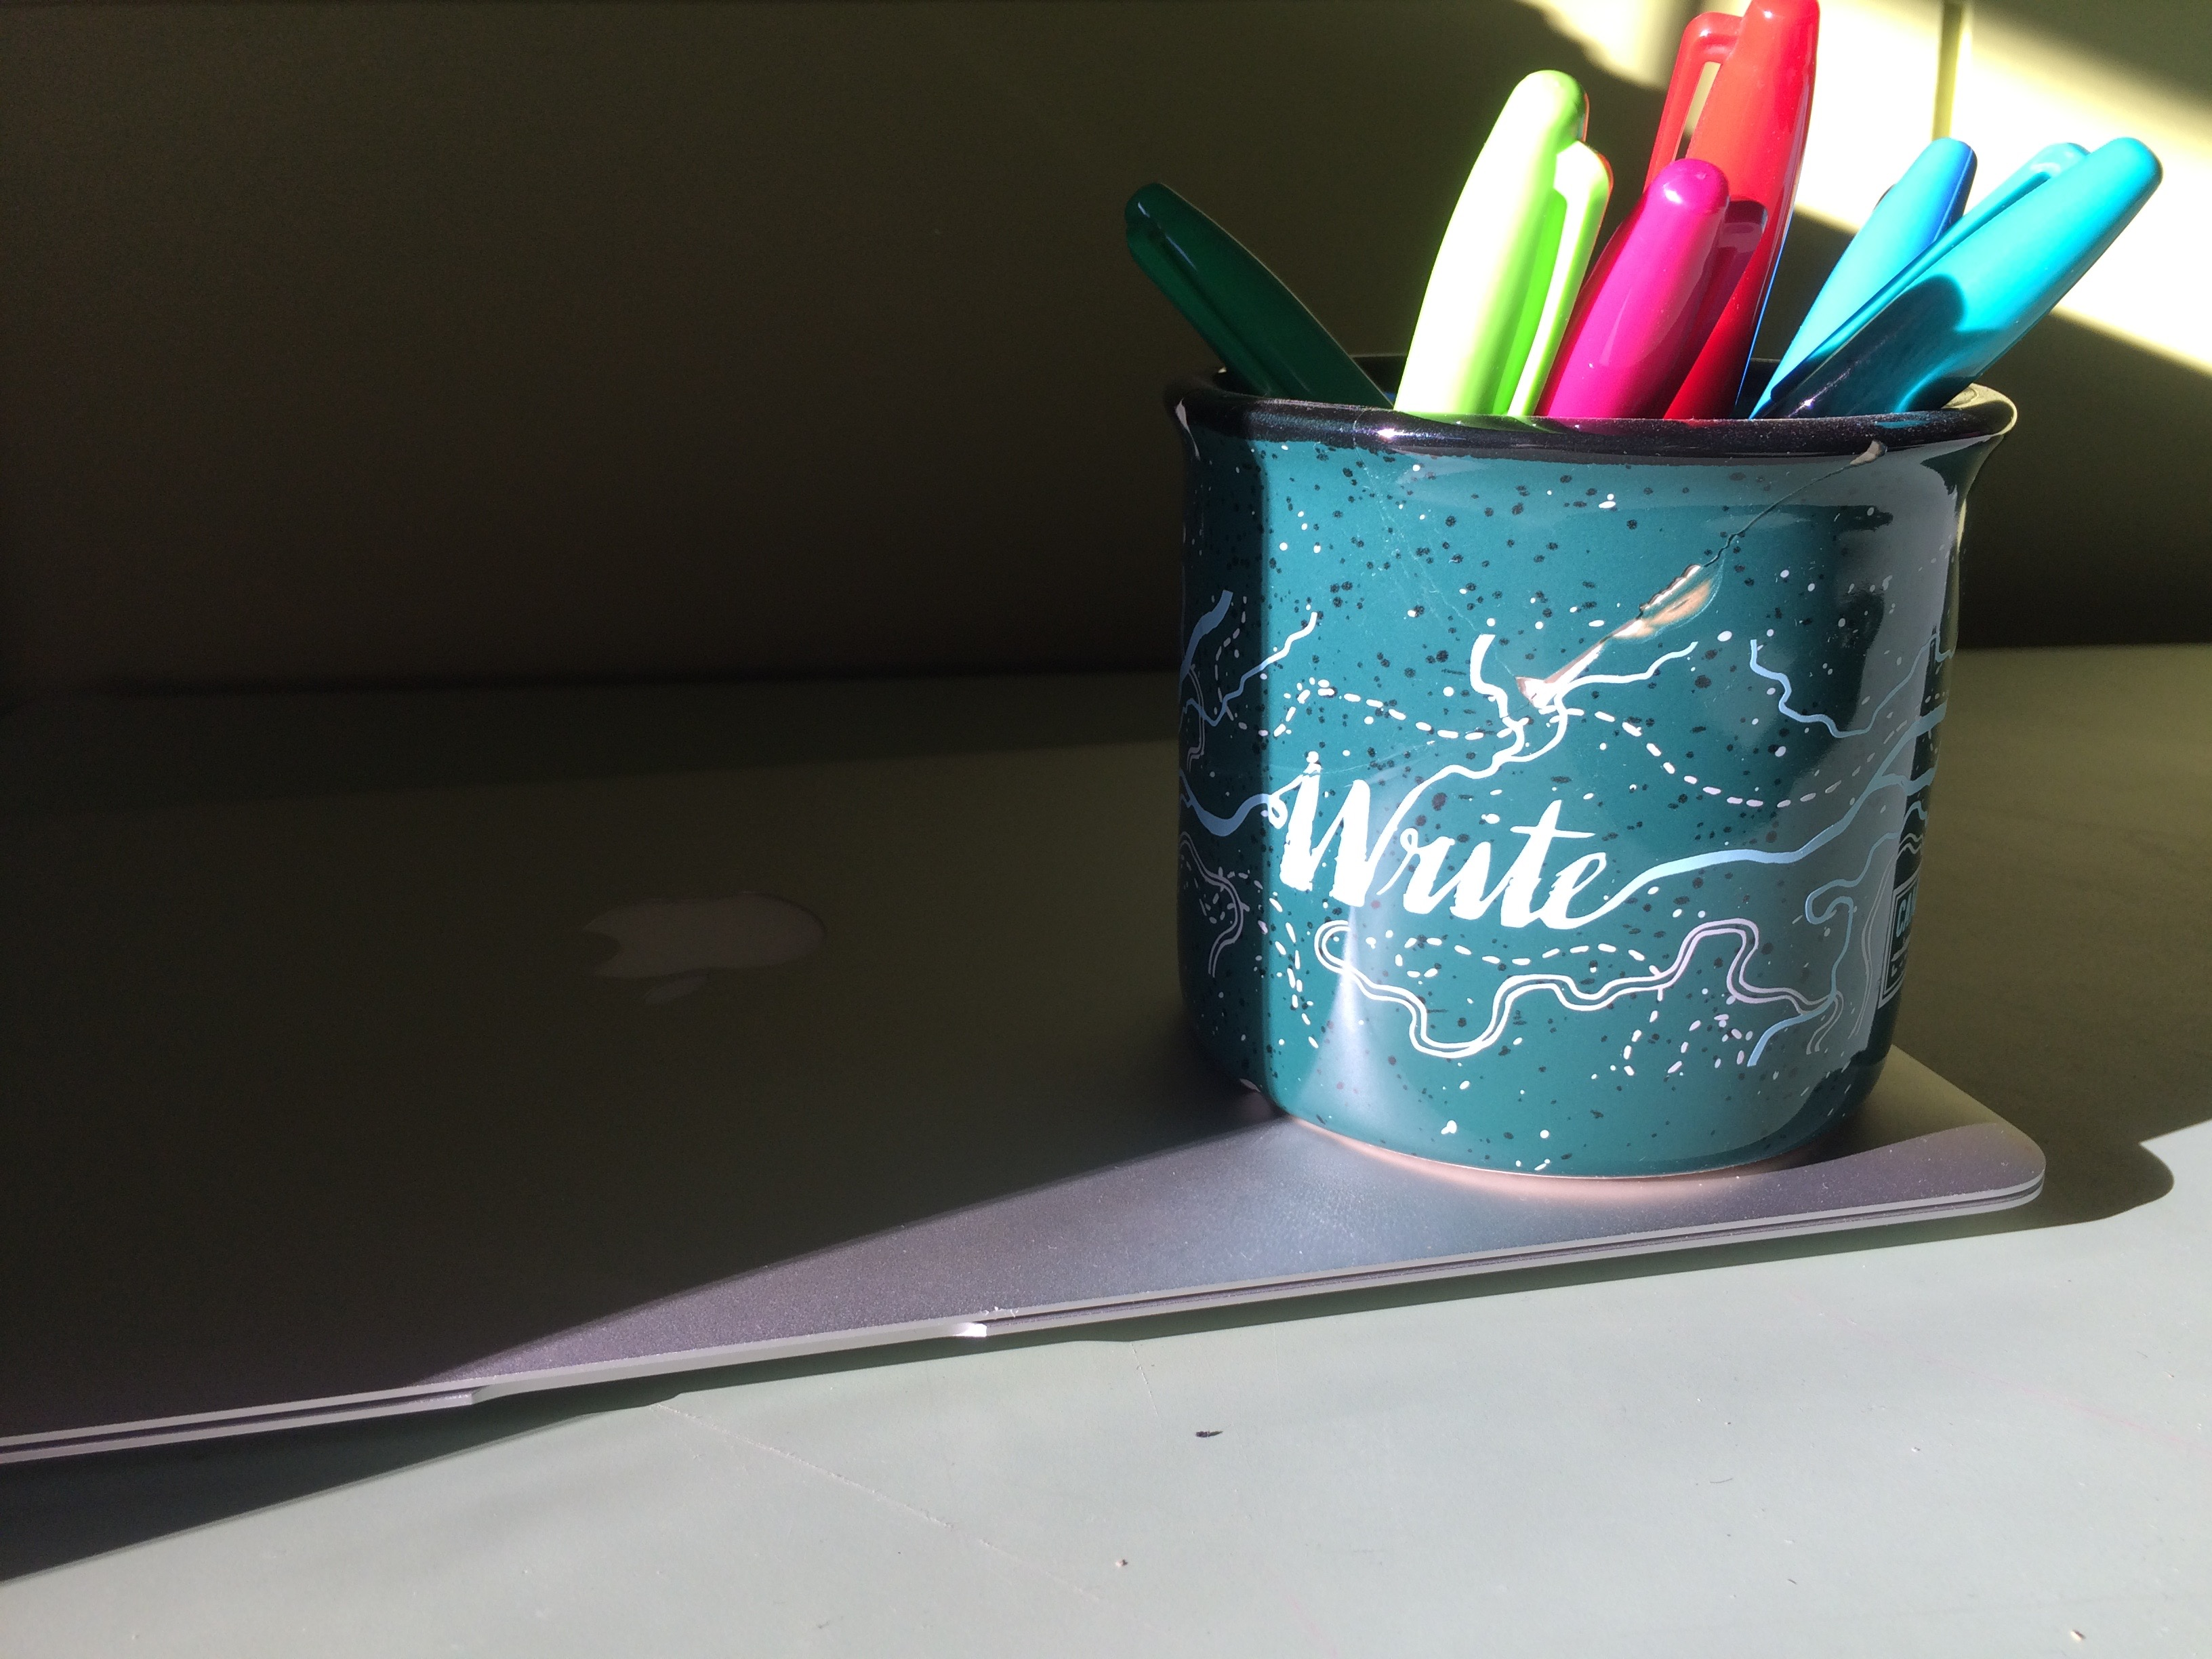 markers in a mug on top of laptop